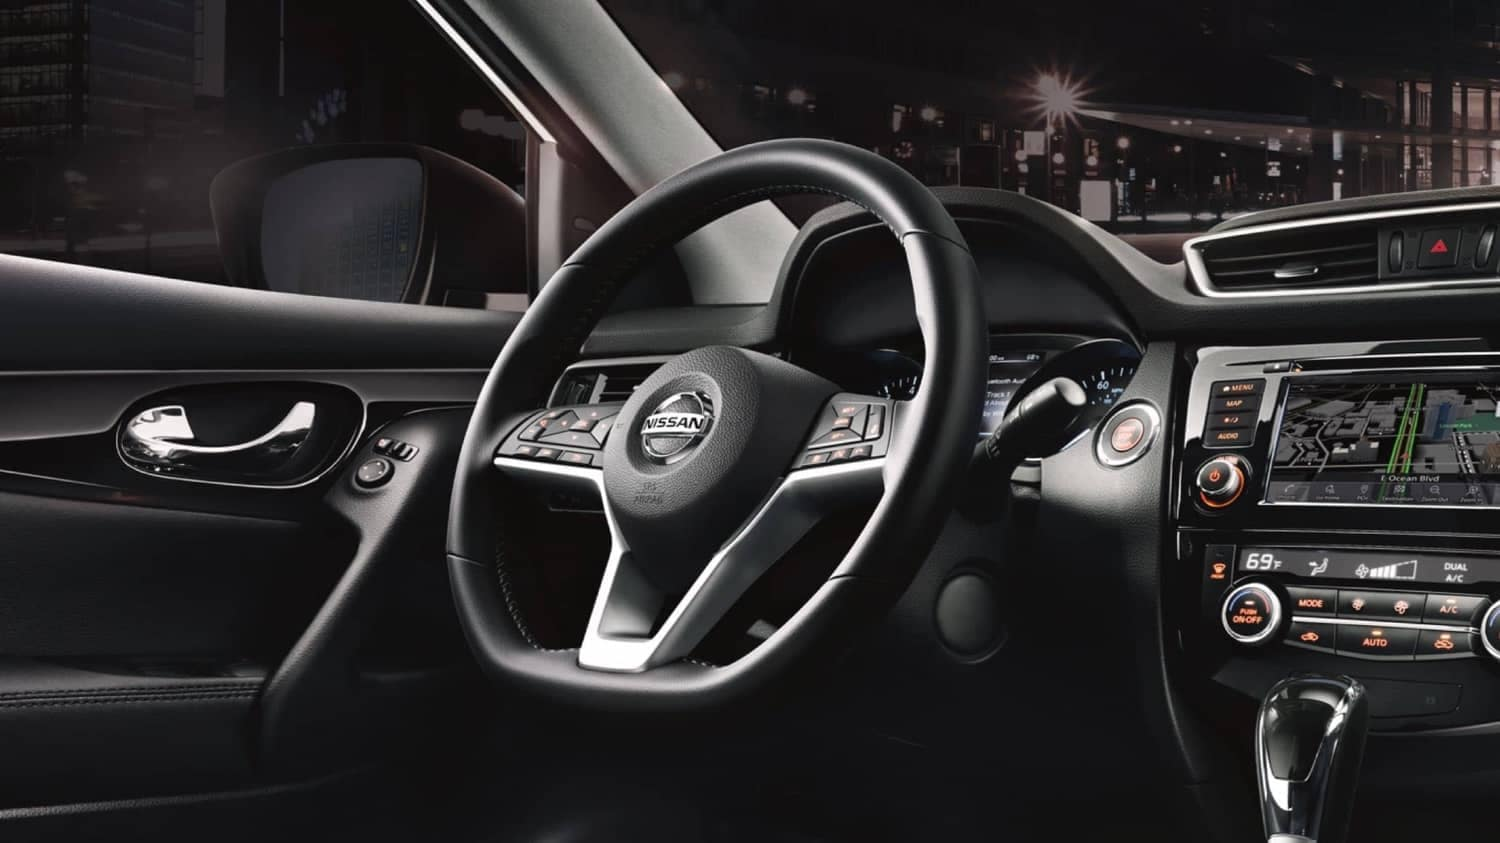 2020 Nissan Qashqai Interior Shift Surround 01